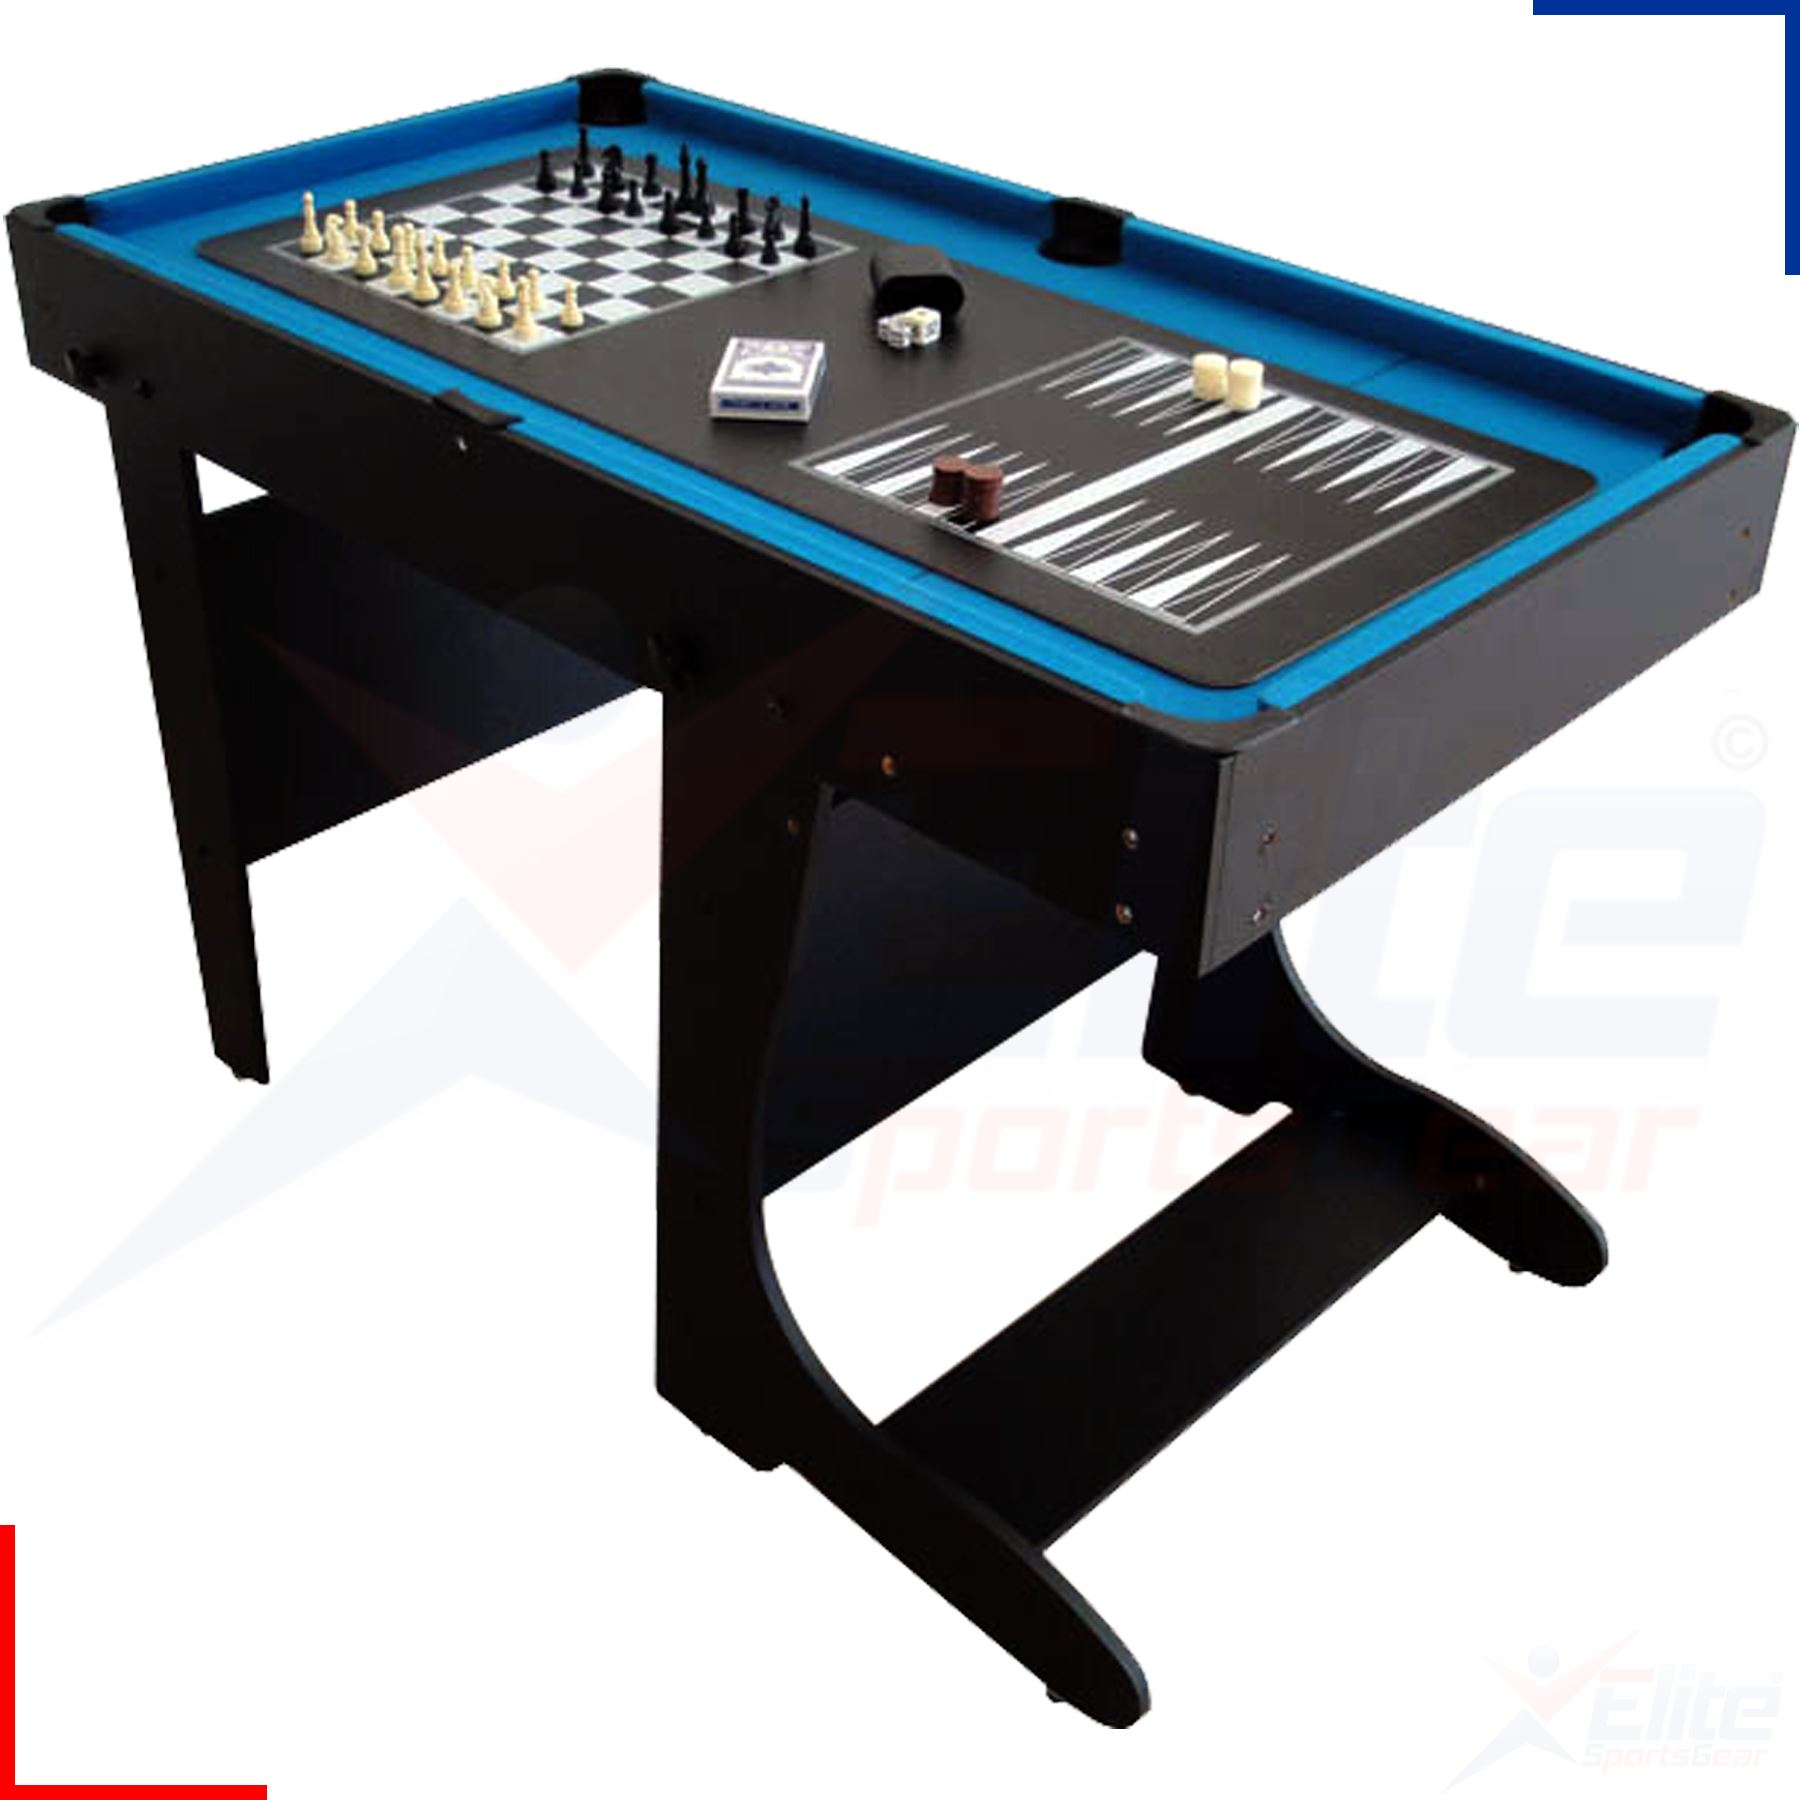 Bce 12 in 1 multi games table snooker football pool for 12 in 1 table games